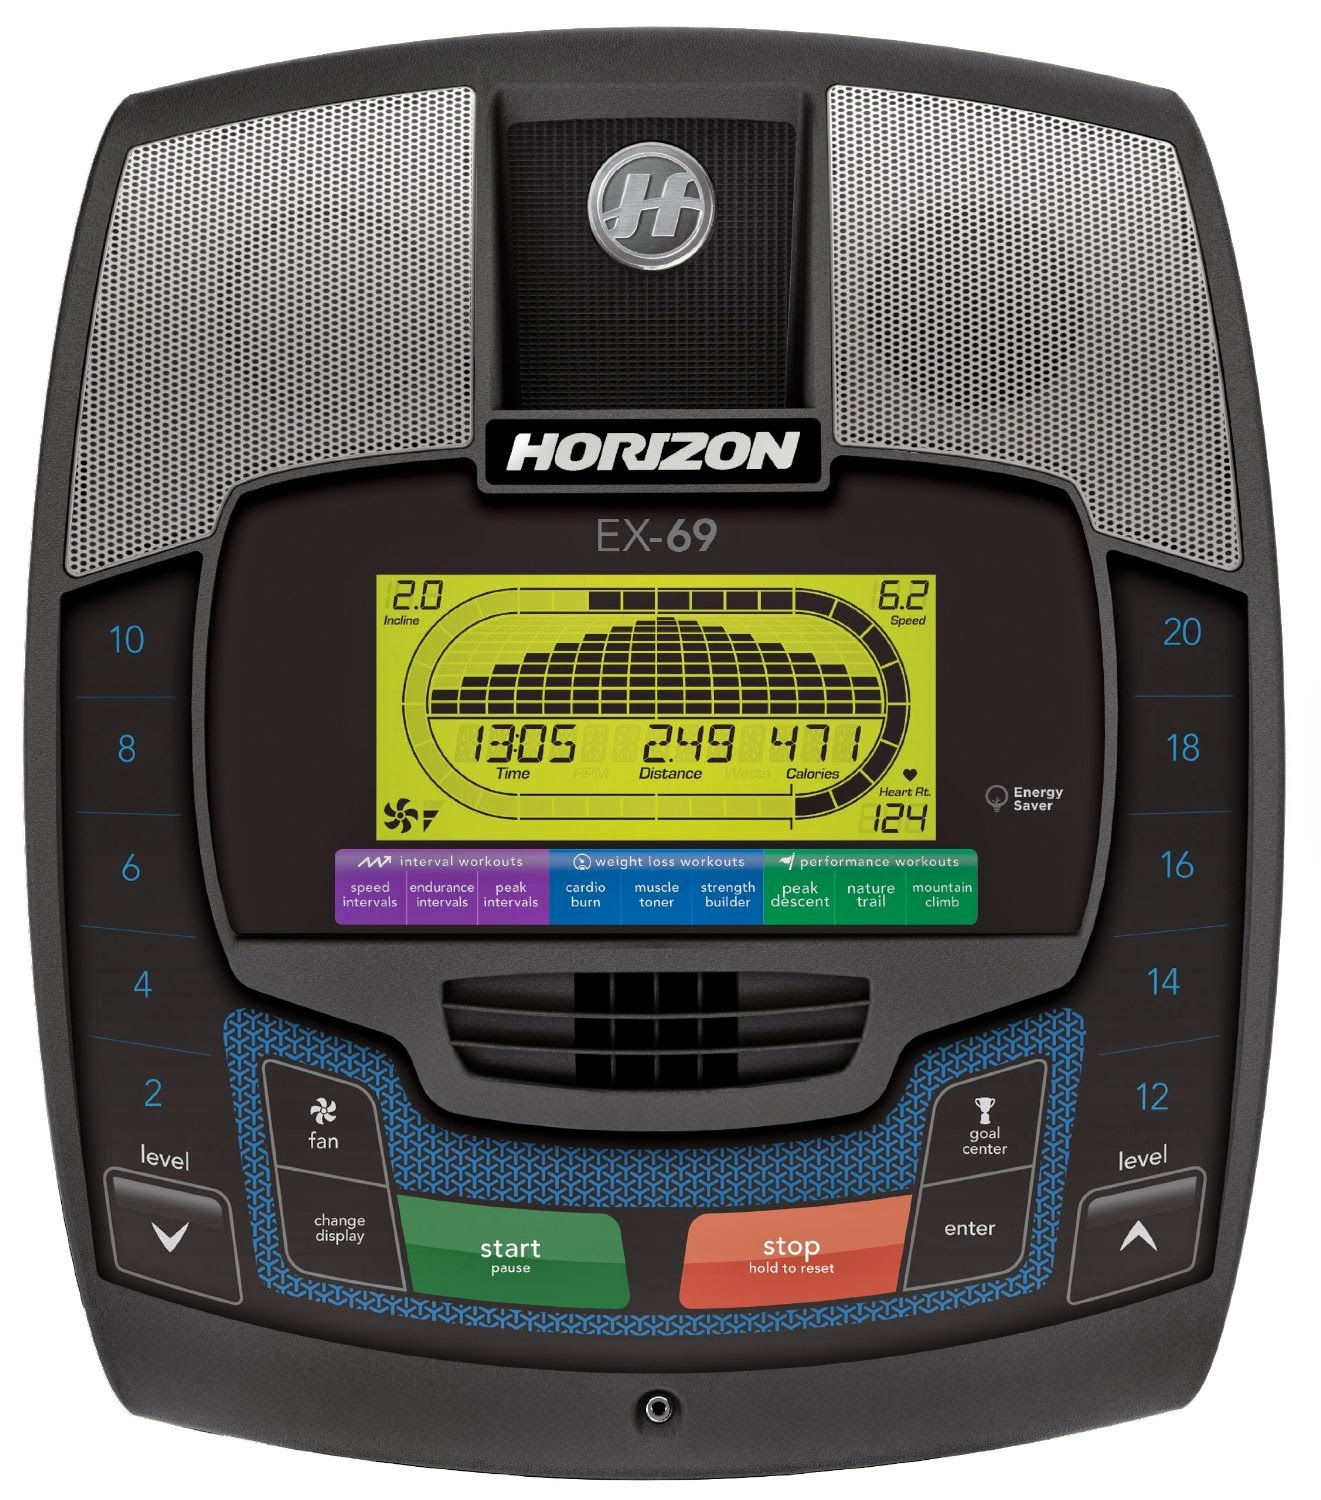 Horizon Fitness EX 69 2 Console, compared with EX 79 2 Elliptical Trainer